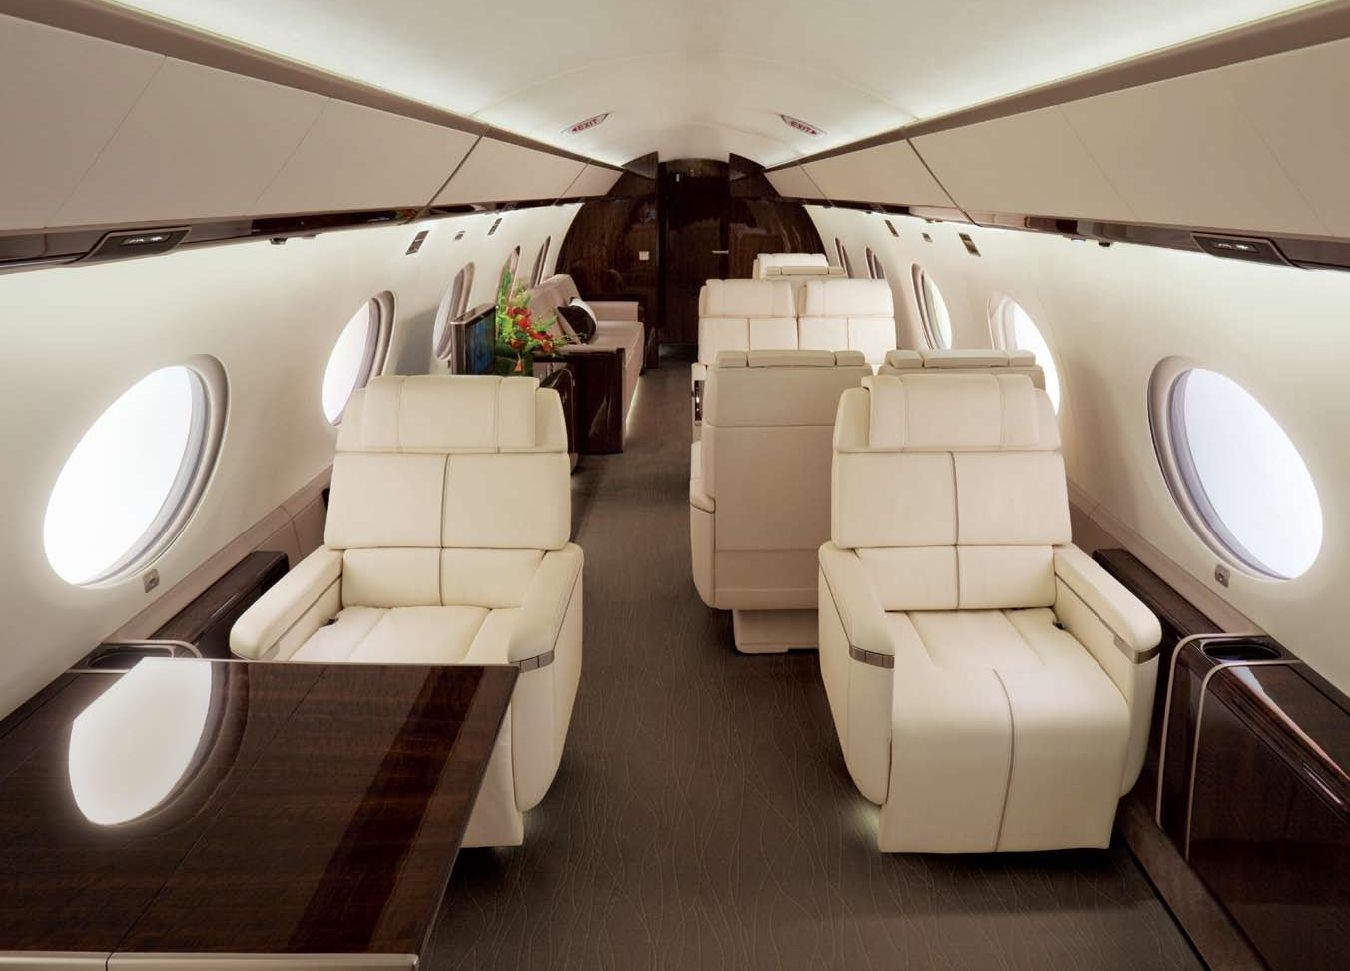 Inside the Gulfstream G650. Did you know it costs an